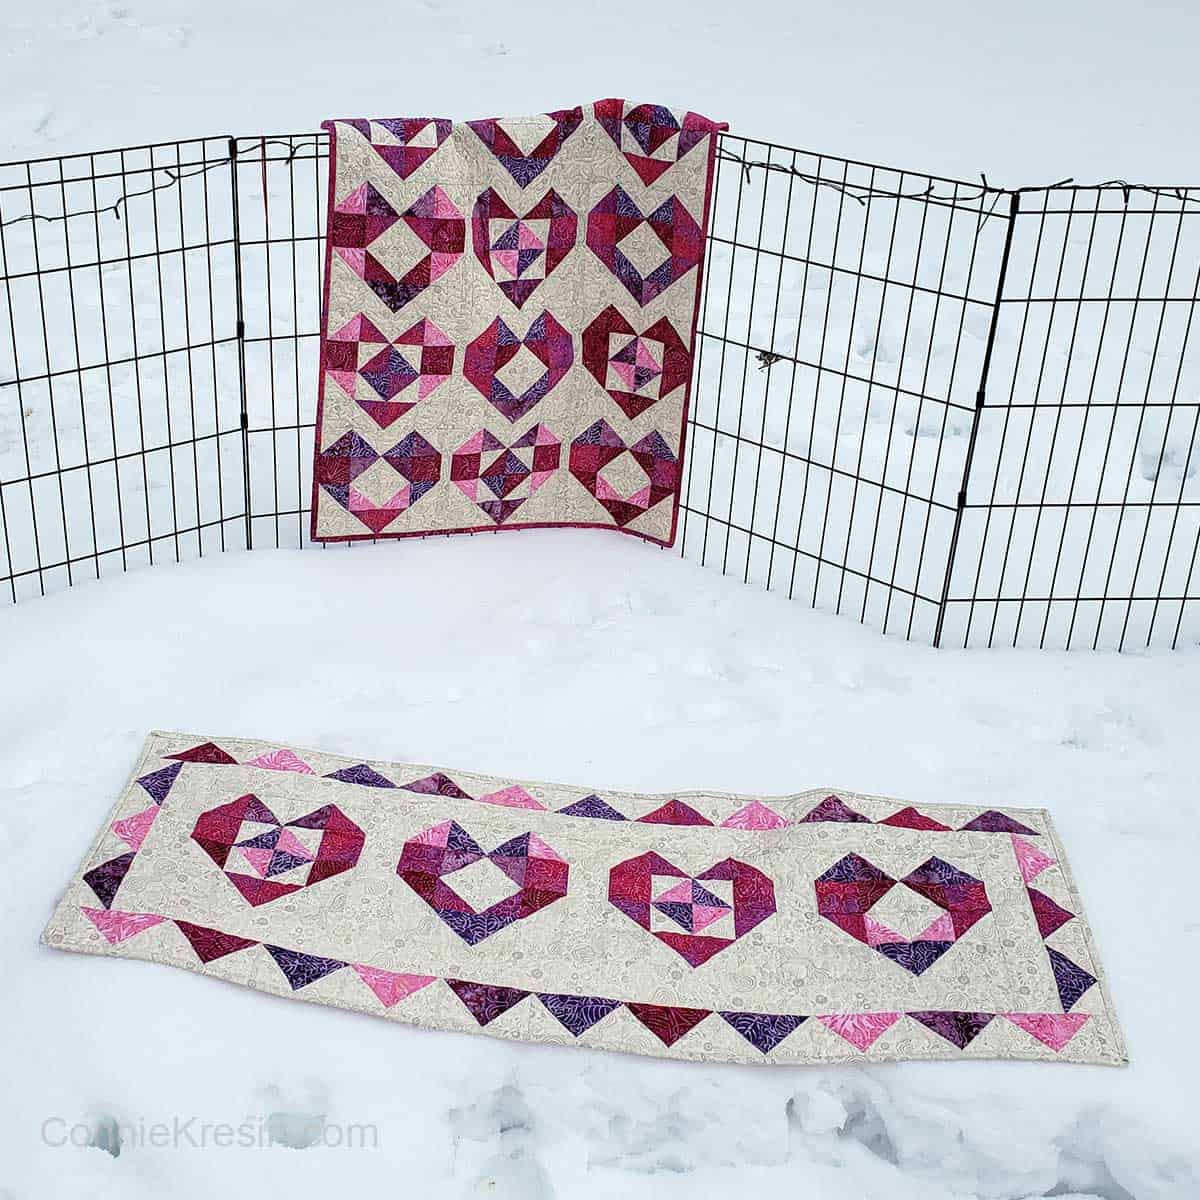 Heart table runner and quilt on fence